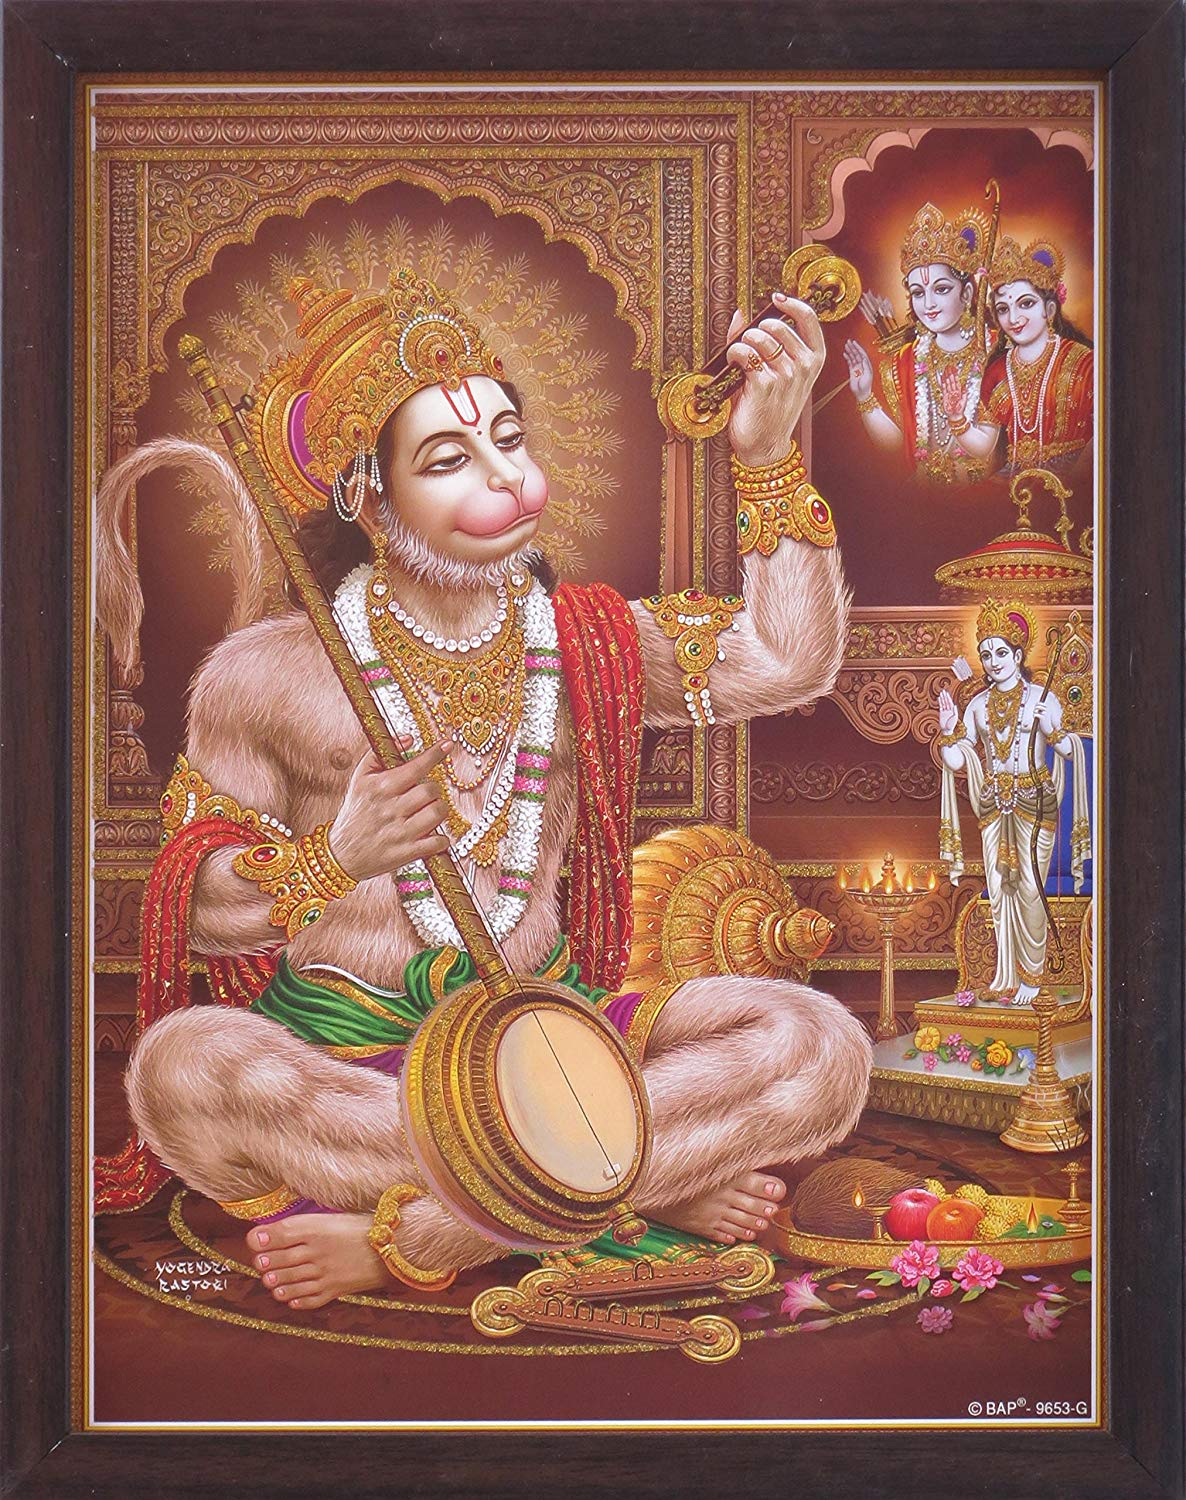 Hindu Lord Hanuman reciting Ram Ram and Playing musical instrument and Lord Ram giving him blessings, Hindu Holy Religious Poster painting with frame for Hindu Religious and Gift purpose.